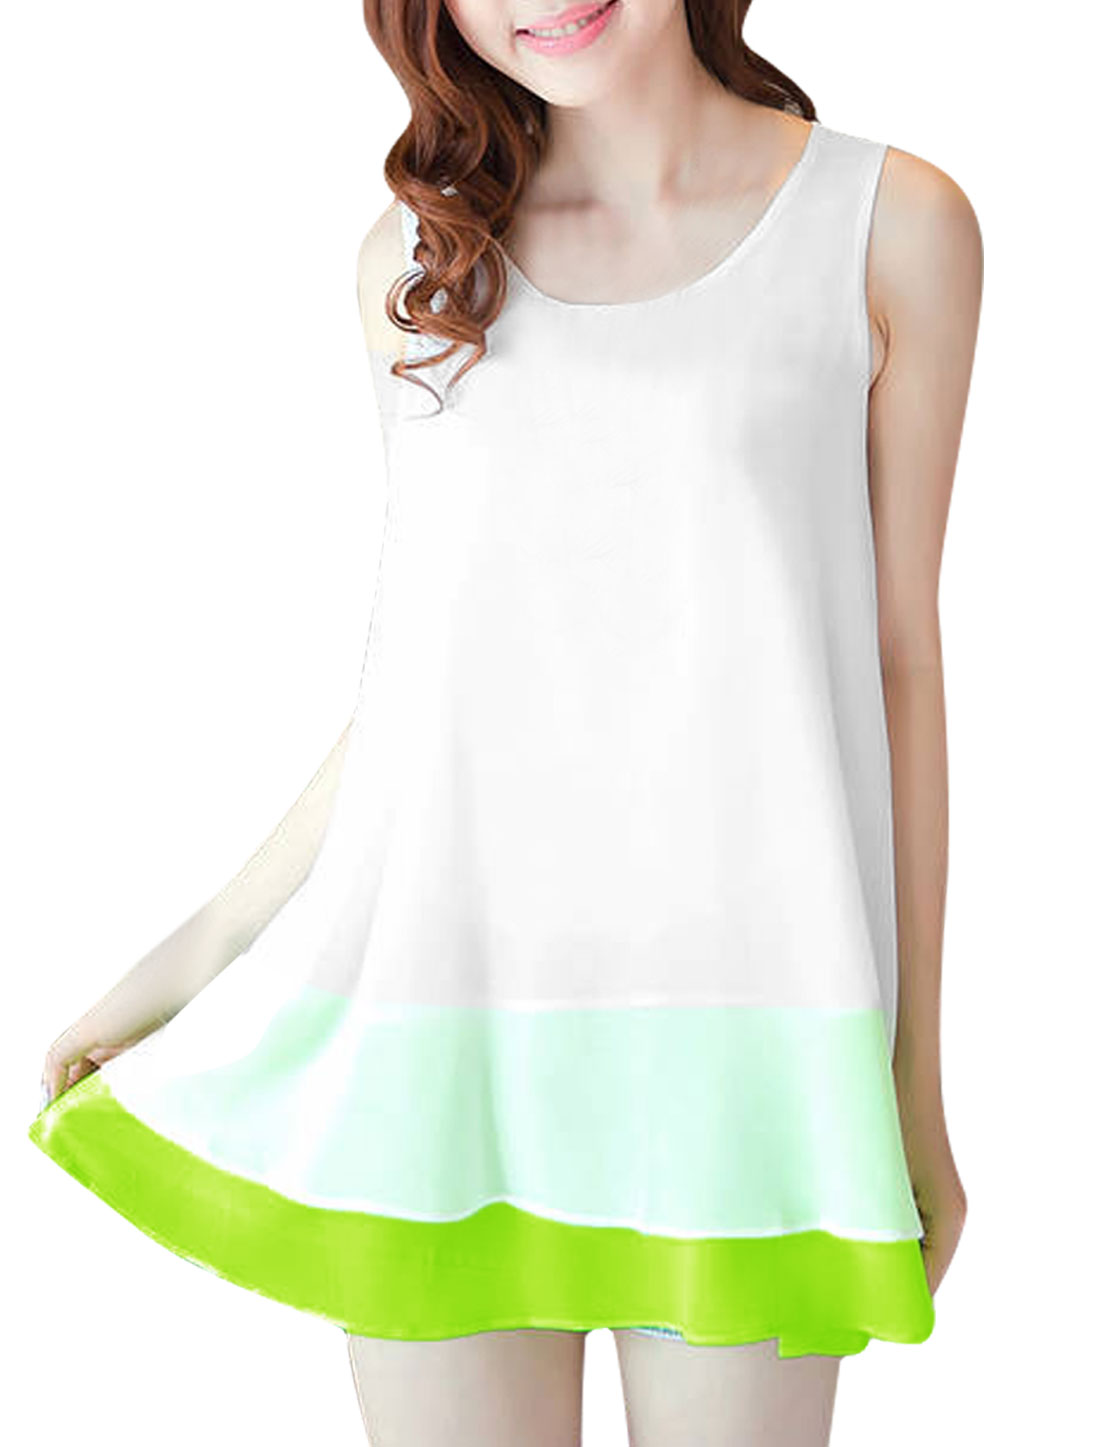 Women Round Neck Semi Sheer Sleeveless Design Chiffon Tunic Shirt White S